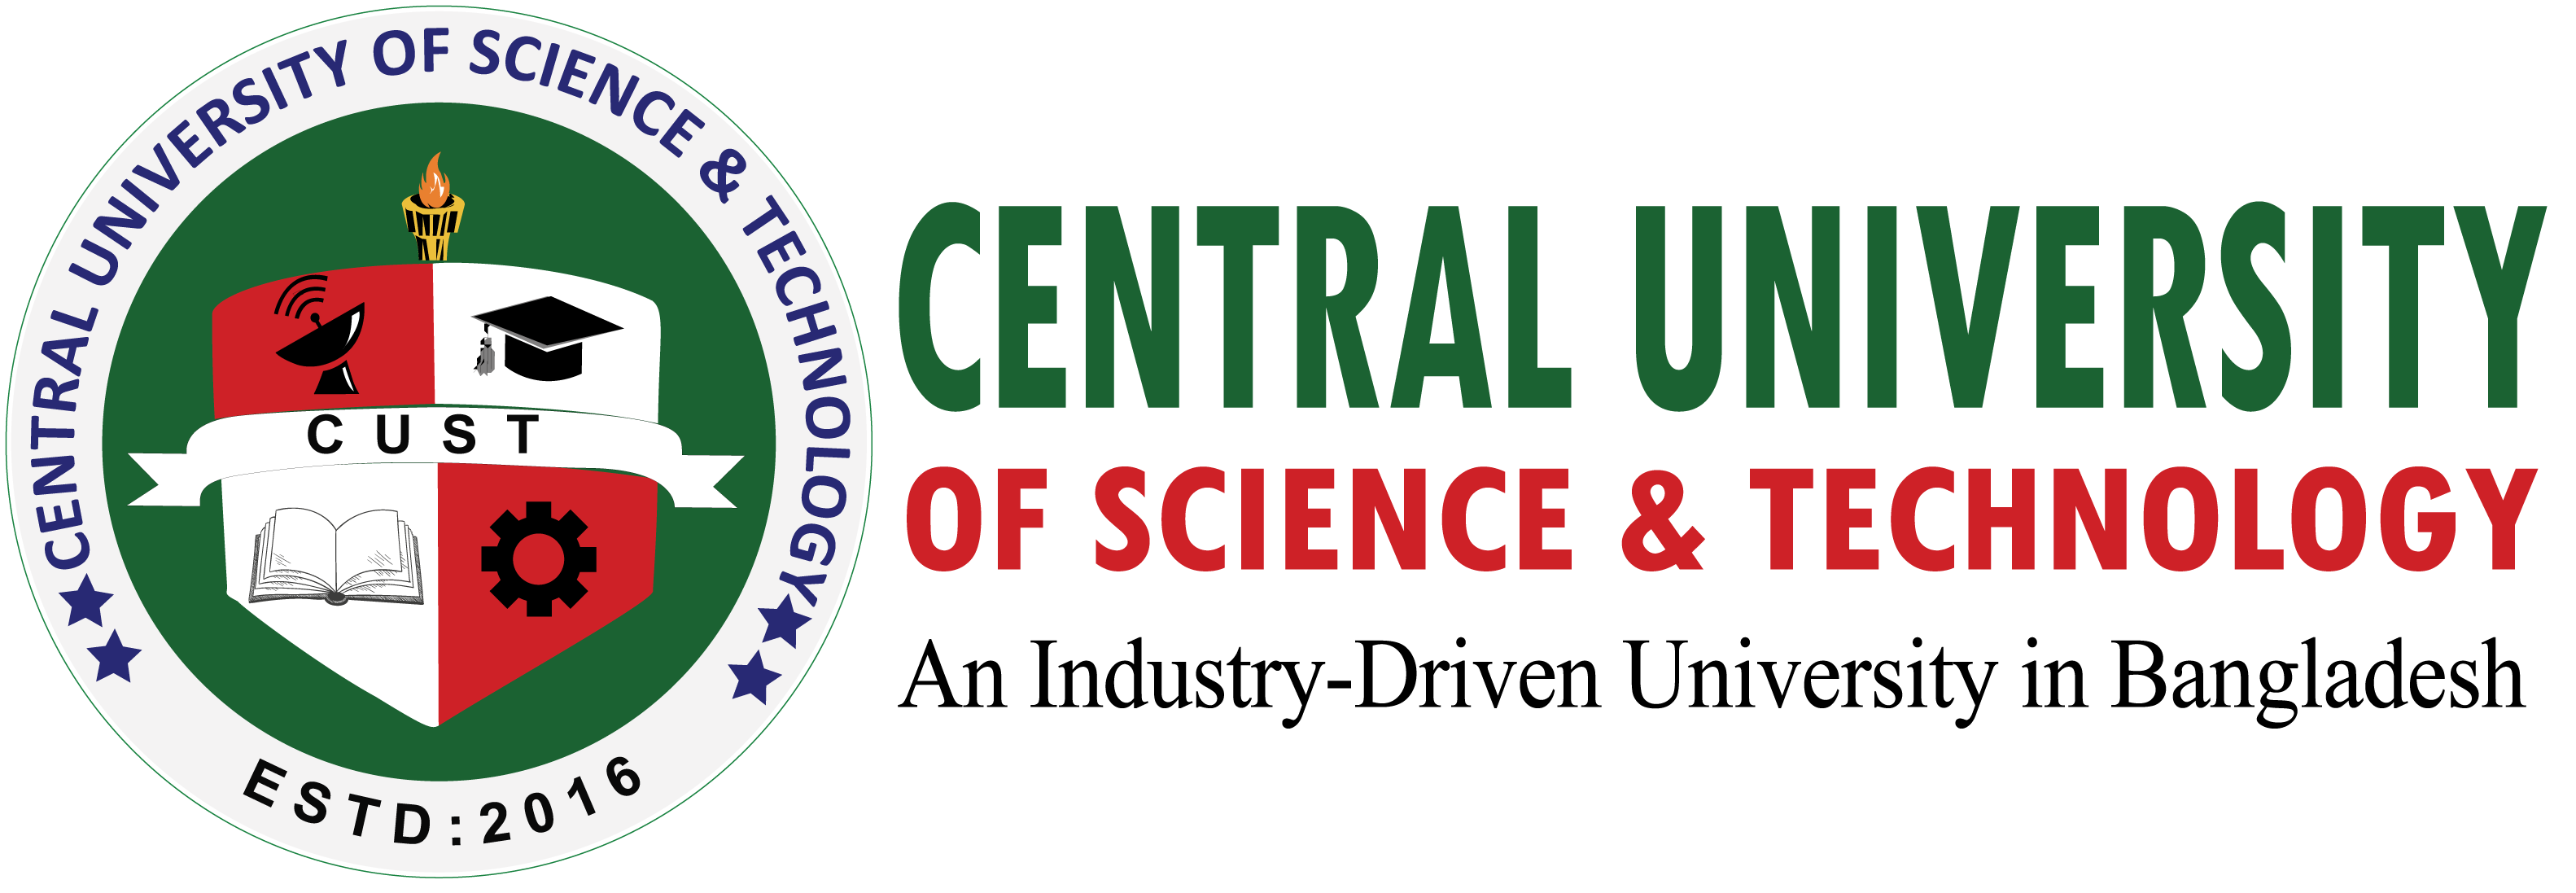 Online Admission - Central University of Science and Technology